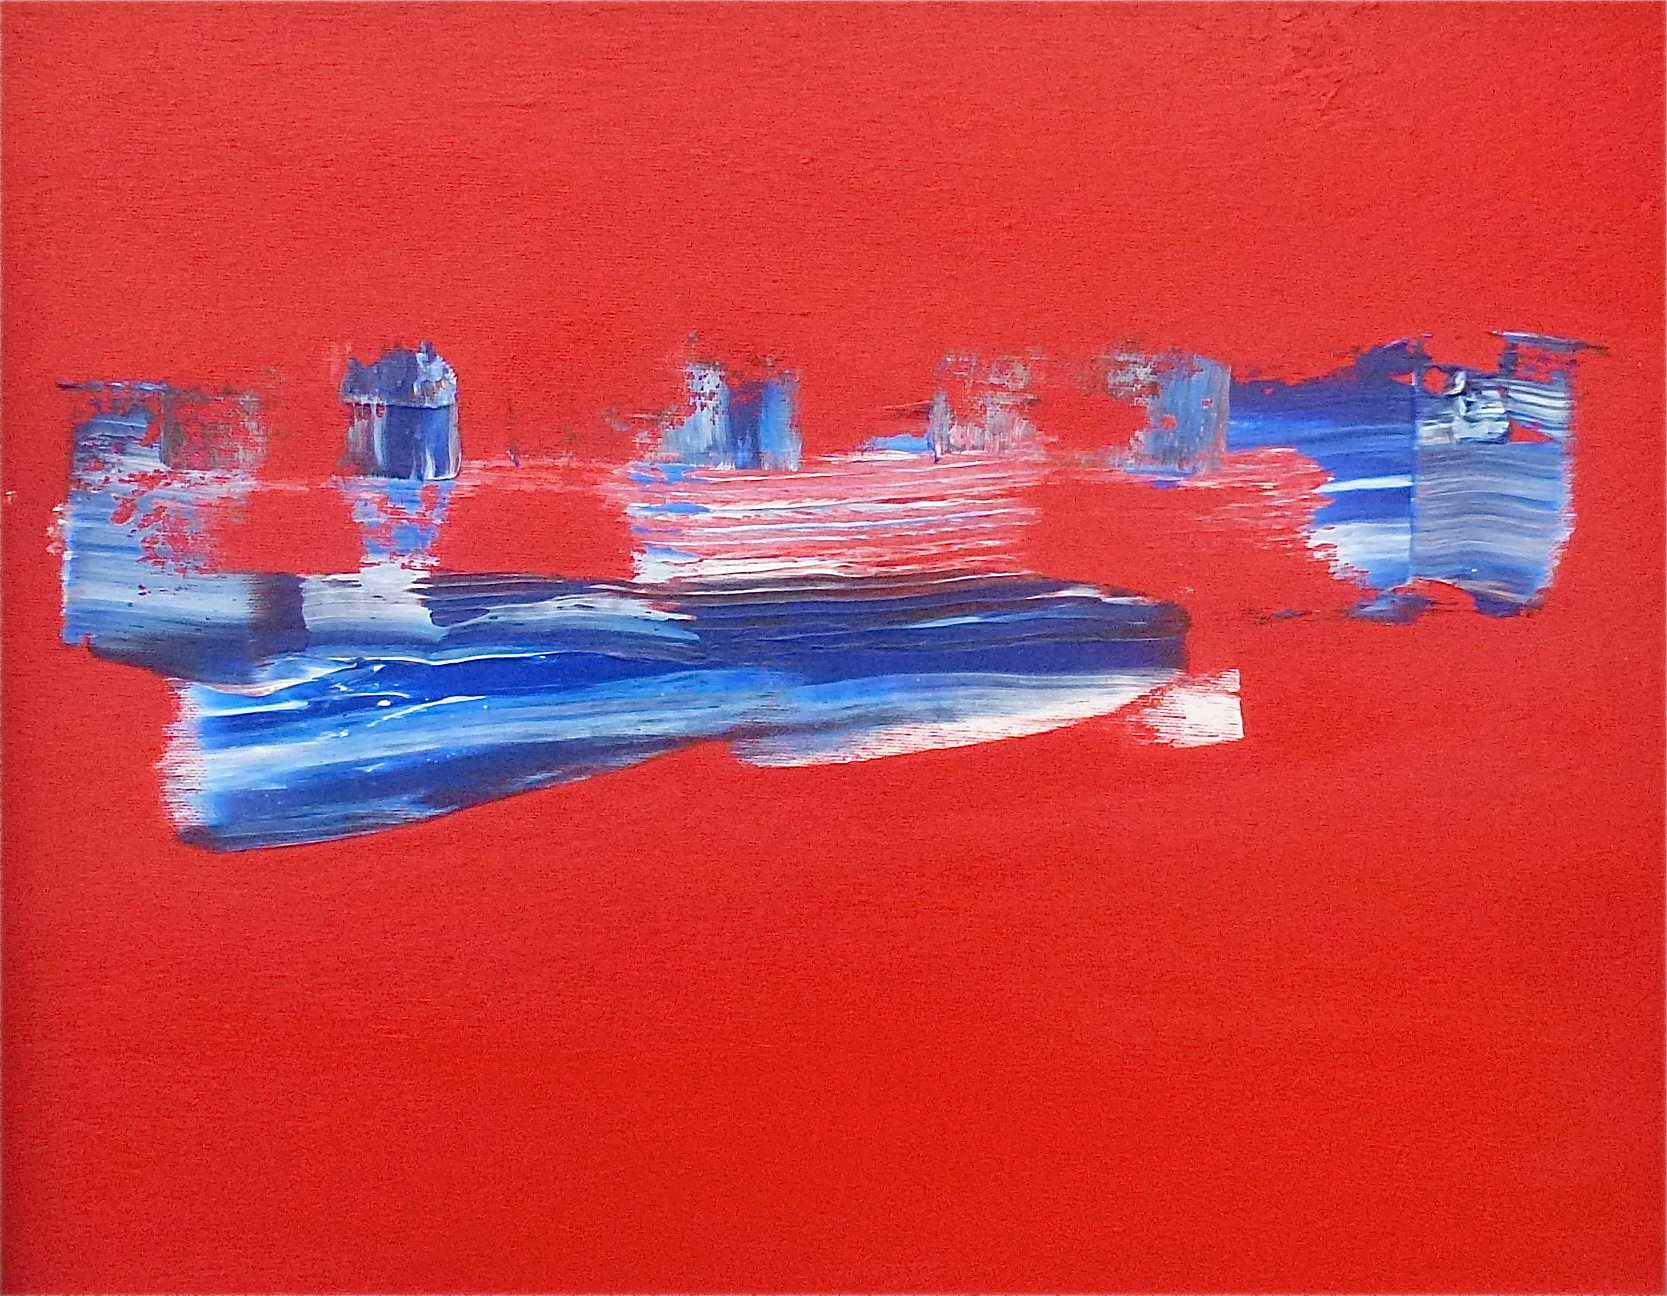 C.Khouri_Abstract in Red no 3_oil on canvas_40cm x 50cm_2015